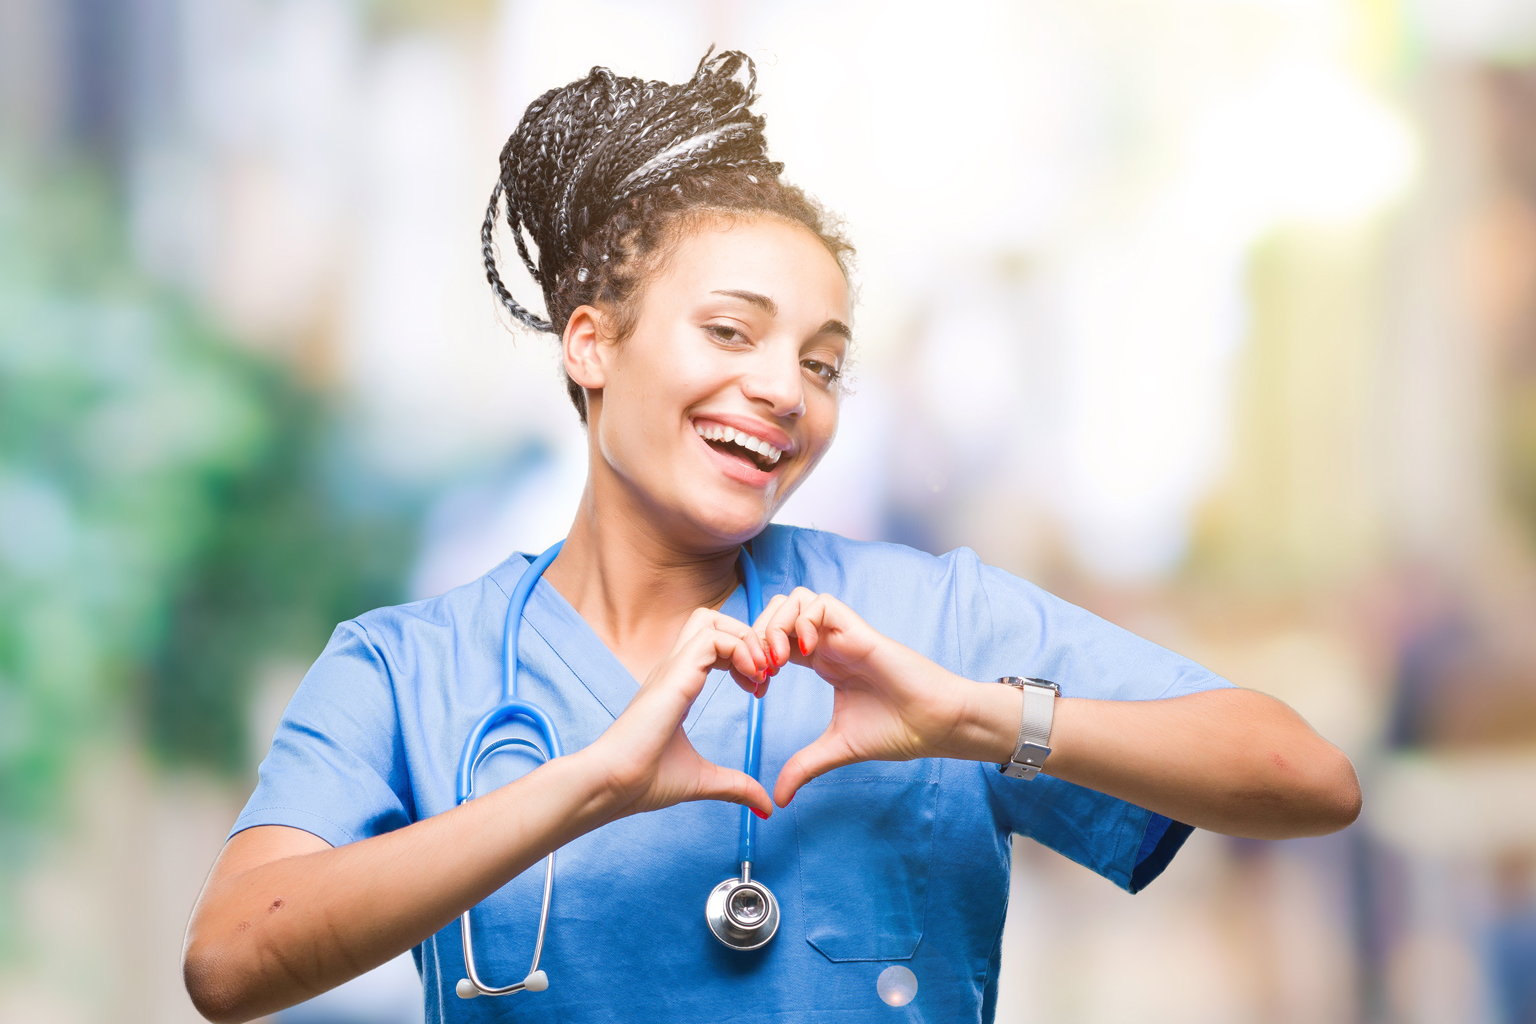 Chocolates and tissues: Nursing is a work of heart